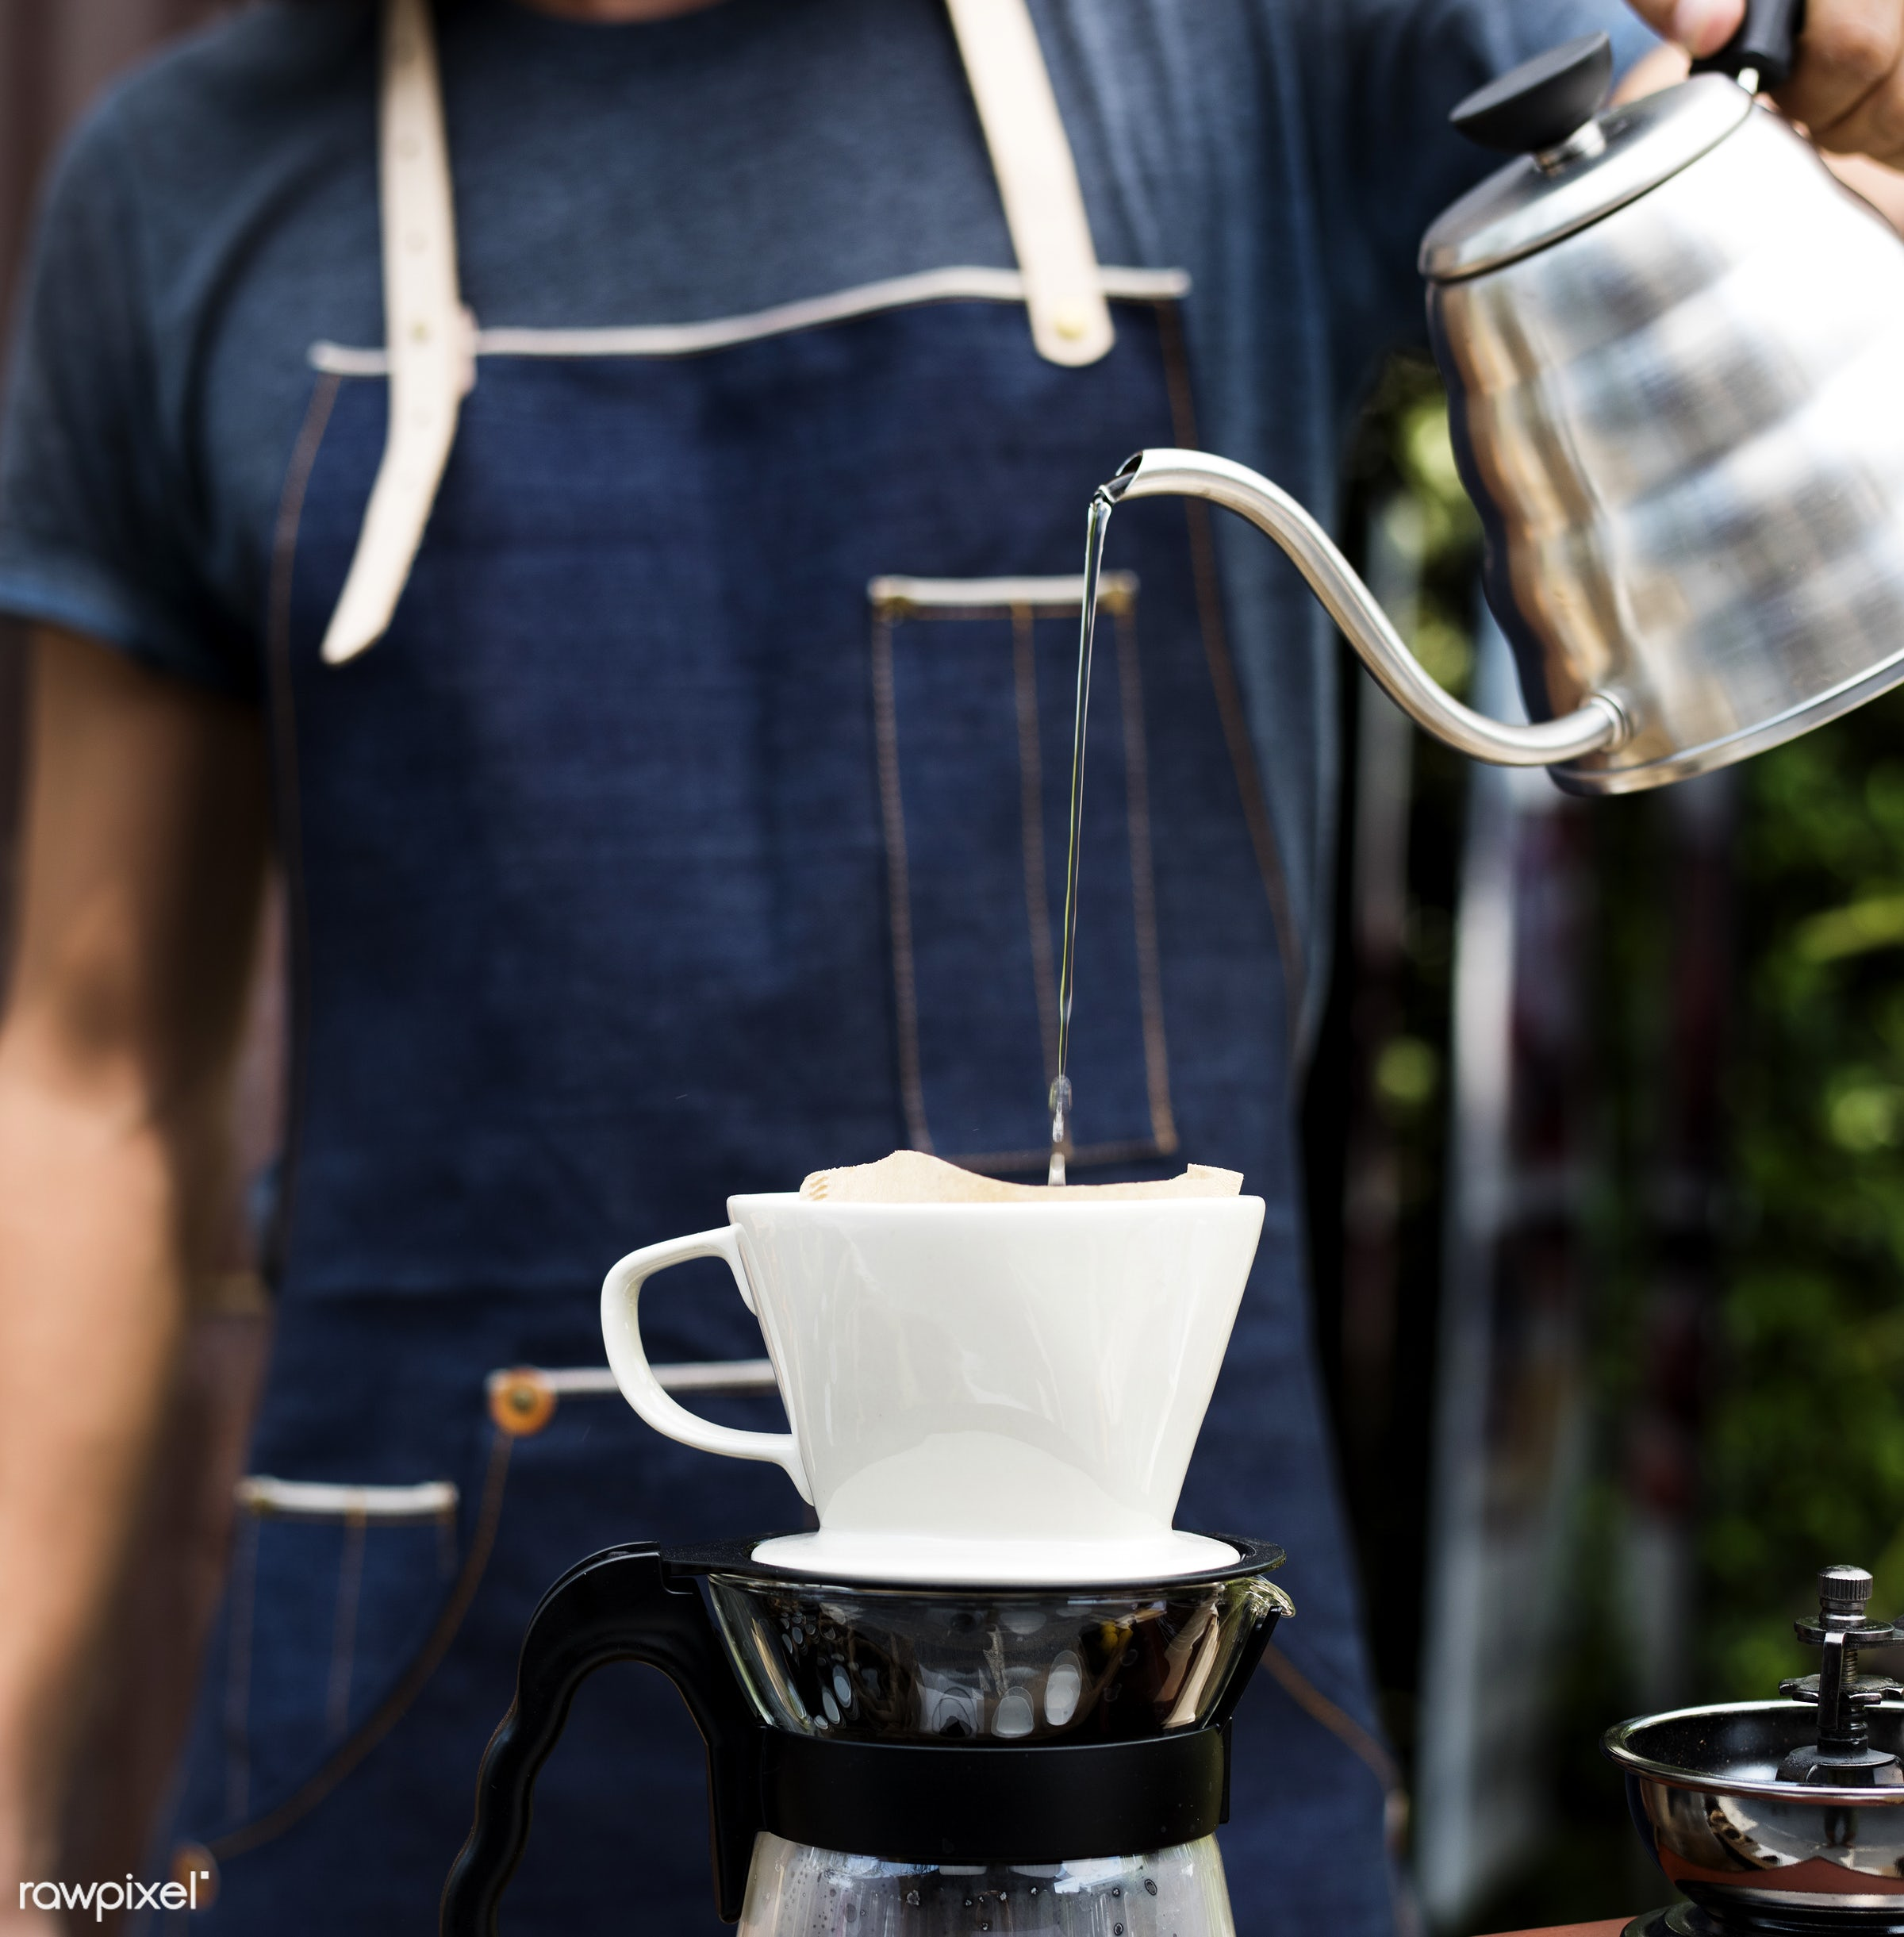 technique, cup, shop, person, aroma, caffeine, relax, show, dripper, people, mug, brew, lifestyle, blend, pouring, action,...